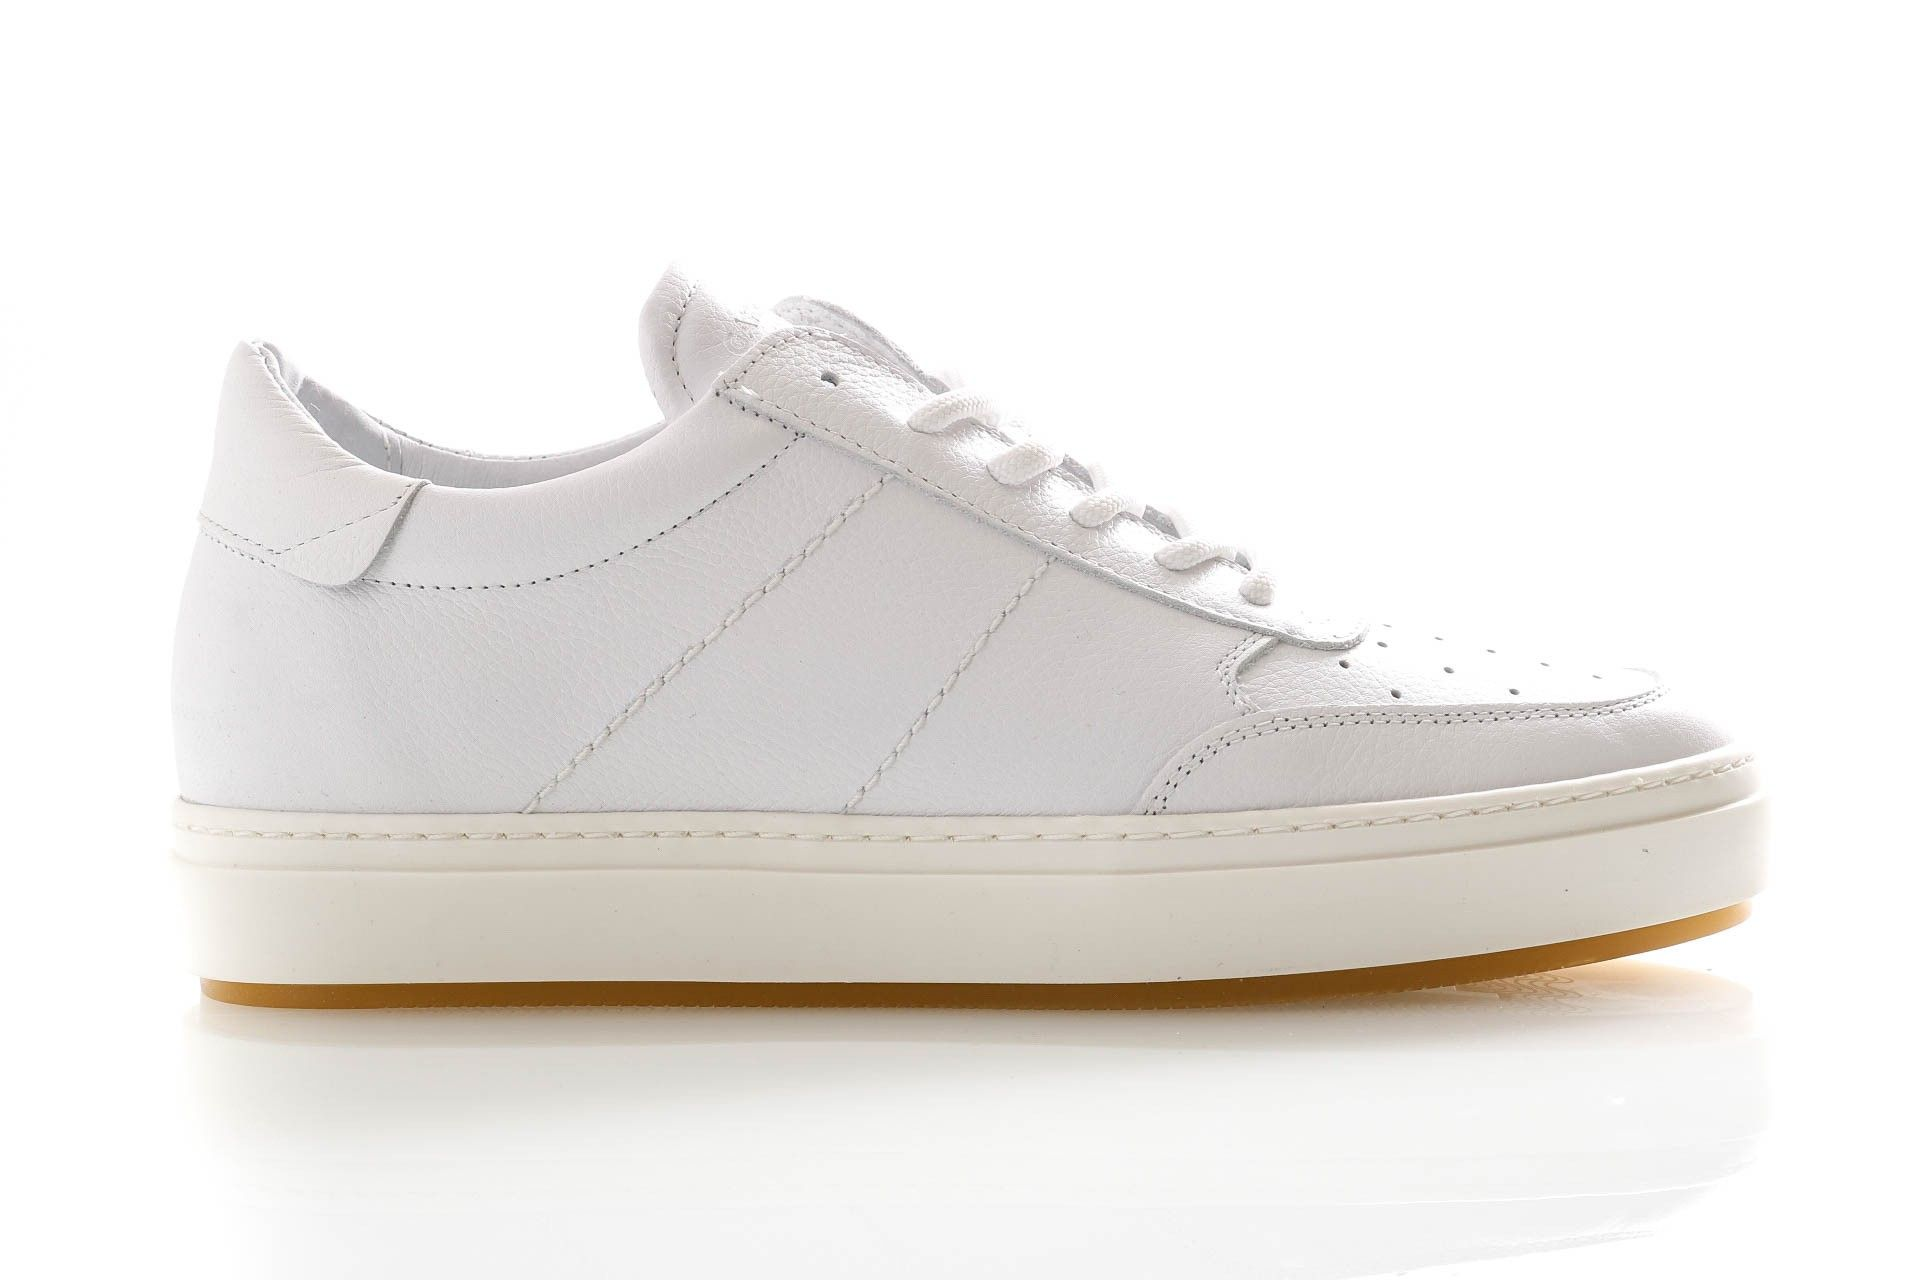 Afbeelding van Garment Project Sneakers Legend White GP2091-100